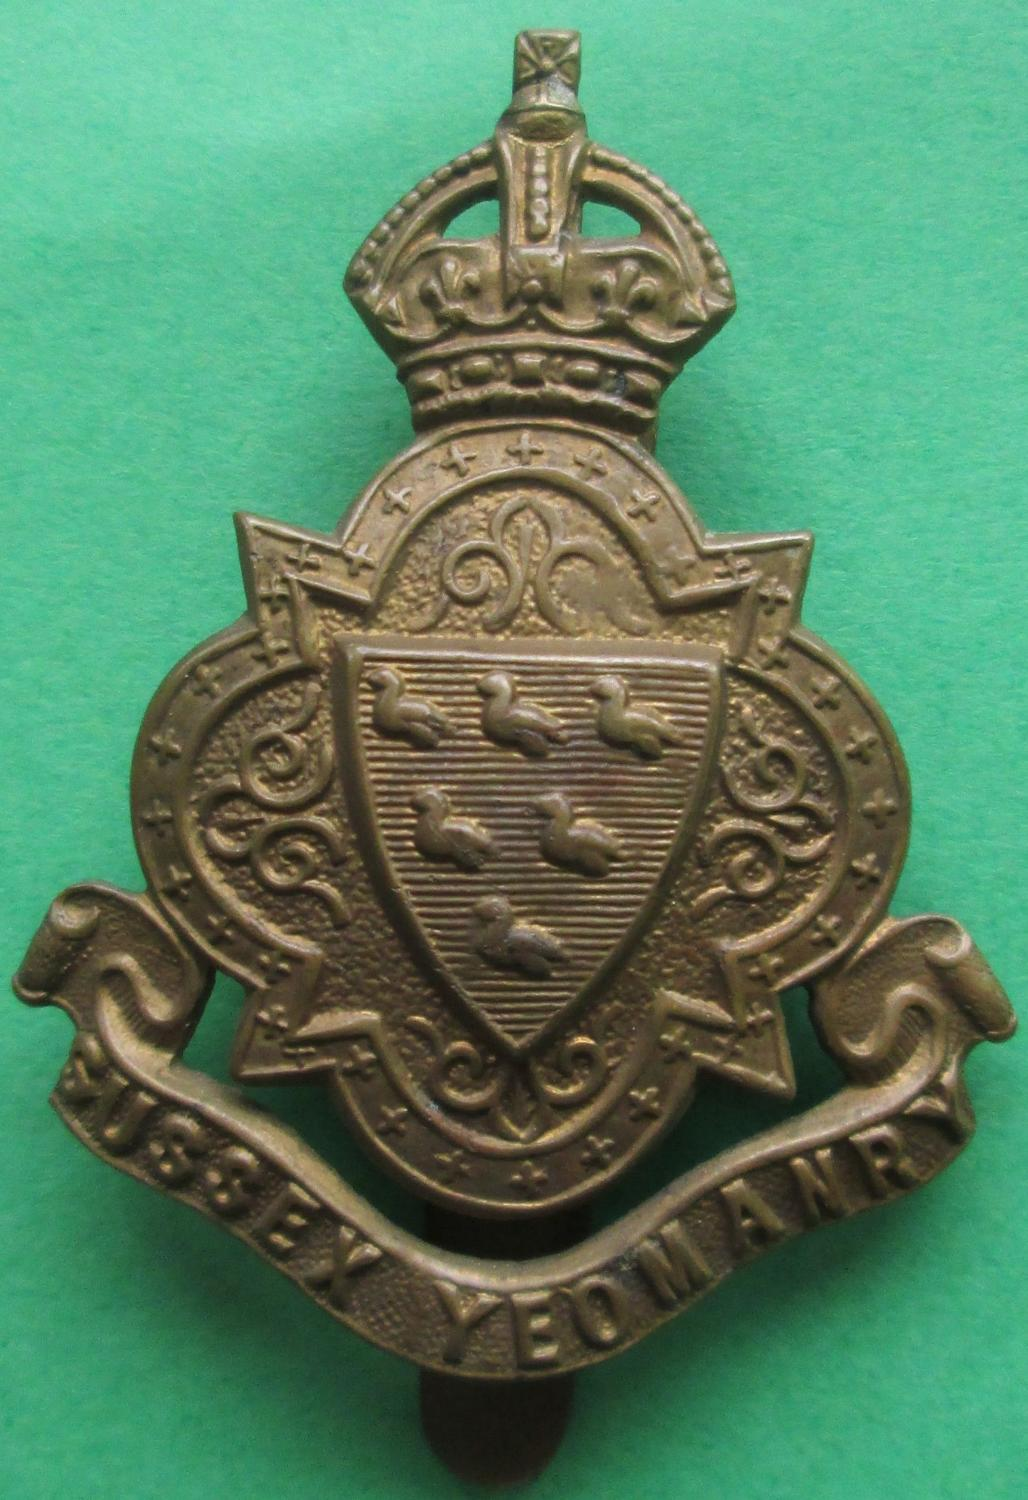 A CAP BADGE FOR THE SUSSEX YEOMANRY